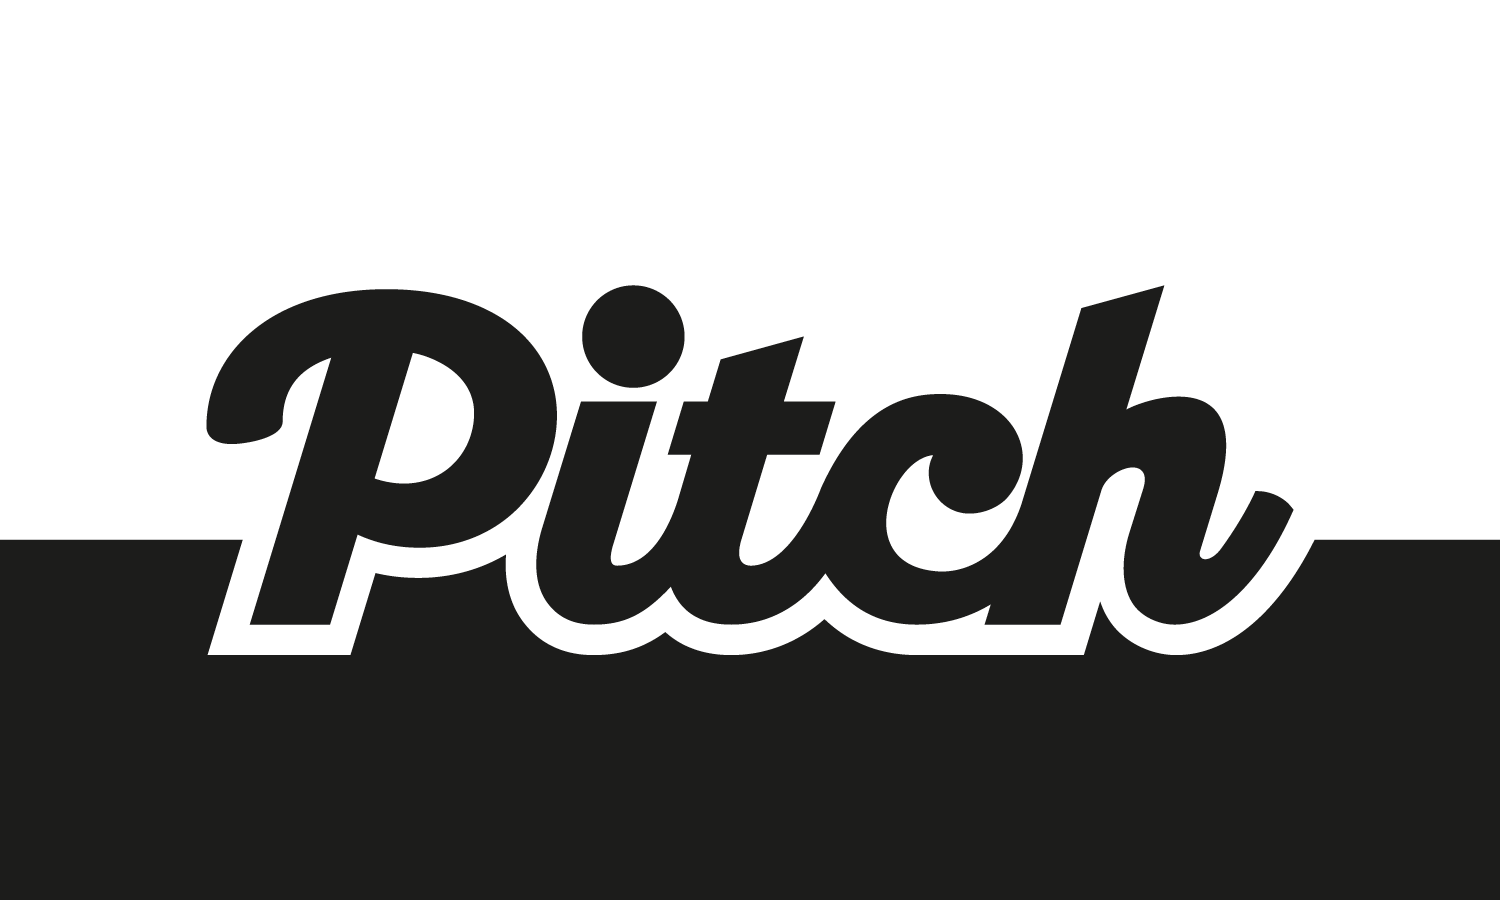 the Pitch Fanzine logo in black and white.